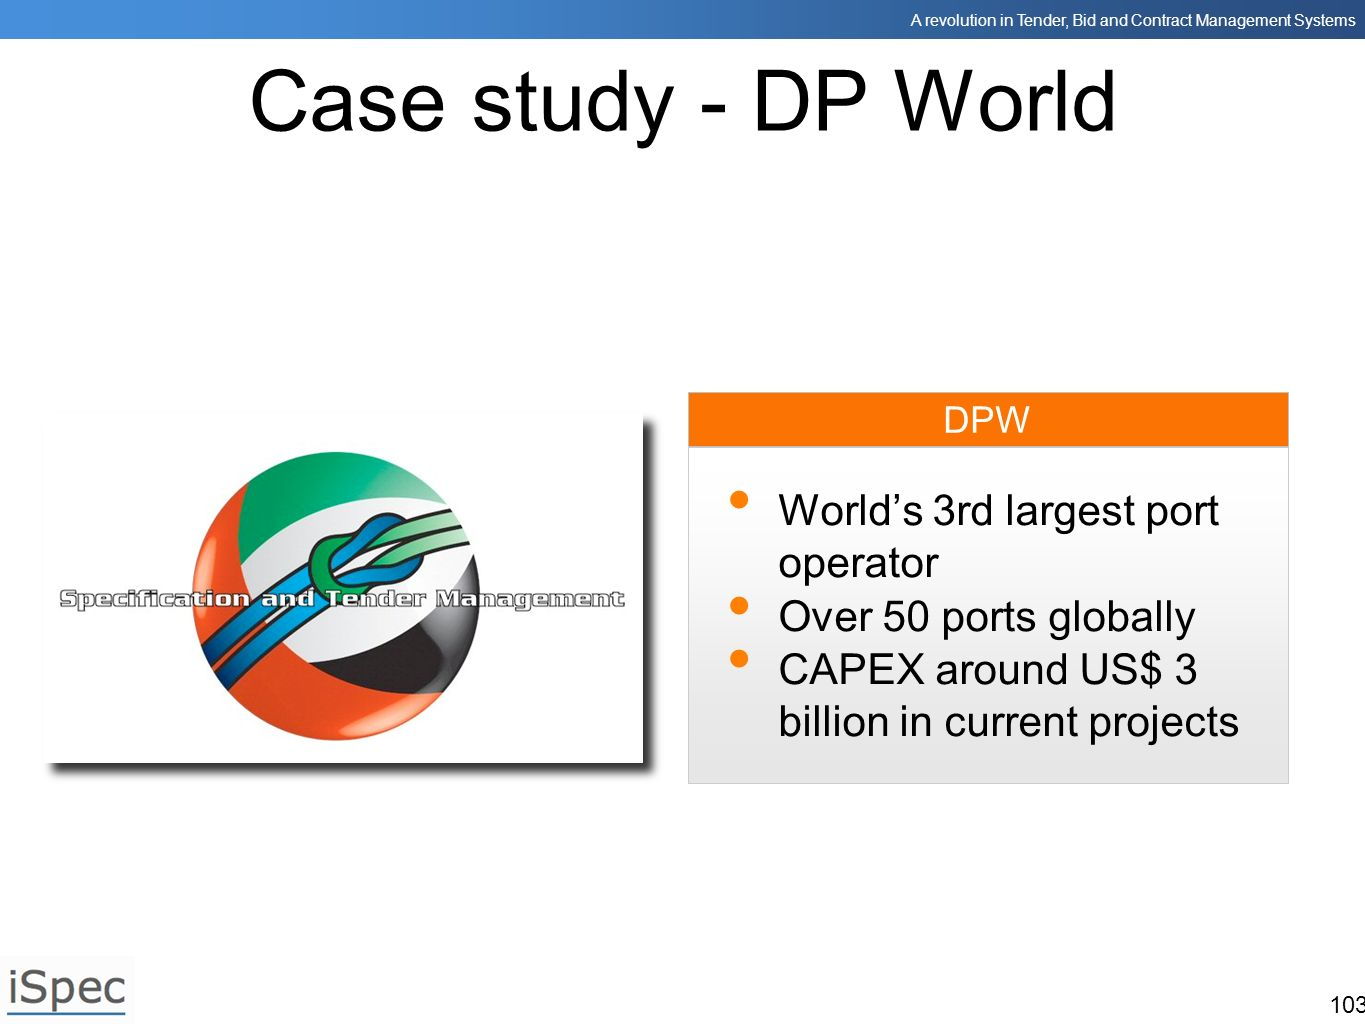 A revolution in Tender, Bid and Contract Management Systems 103 DPW Case study - DP World Worlds 3rd largest port operator Over 50 ports globally CAPE